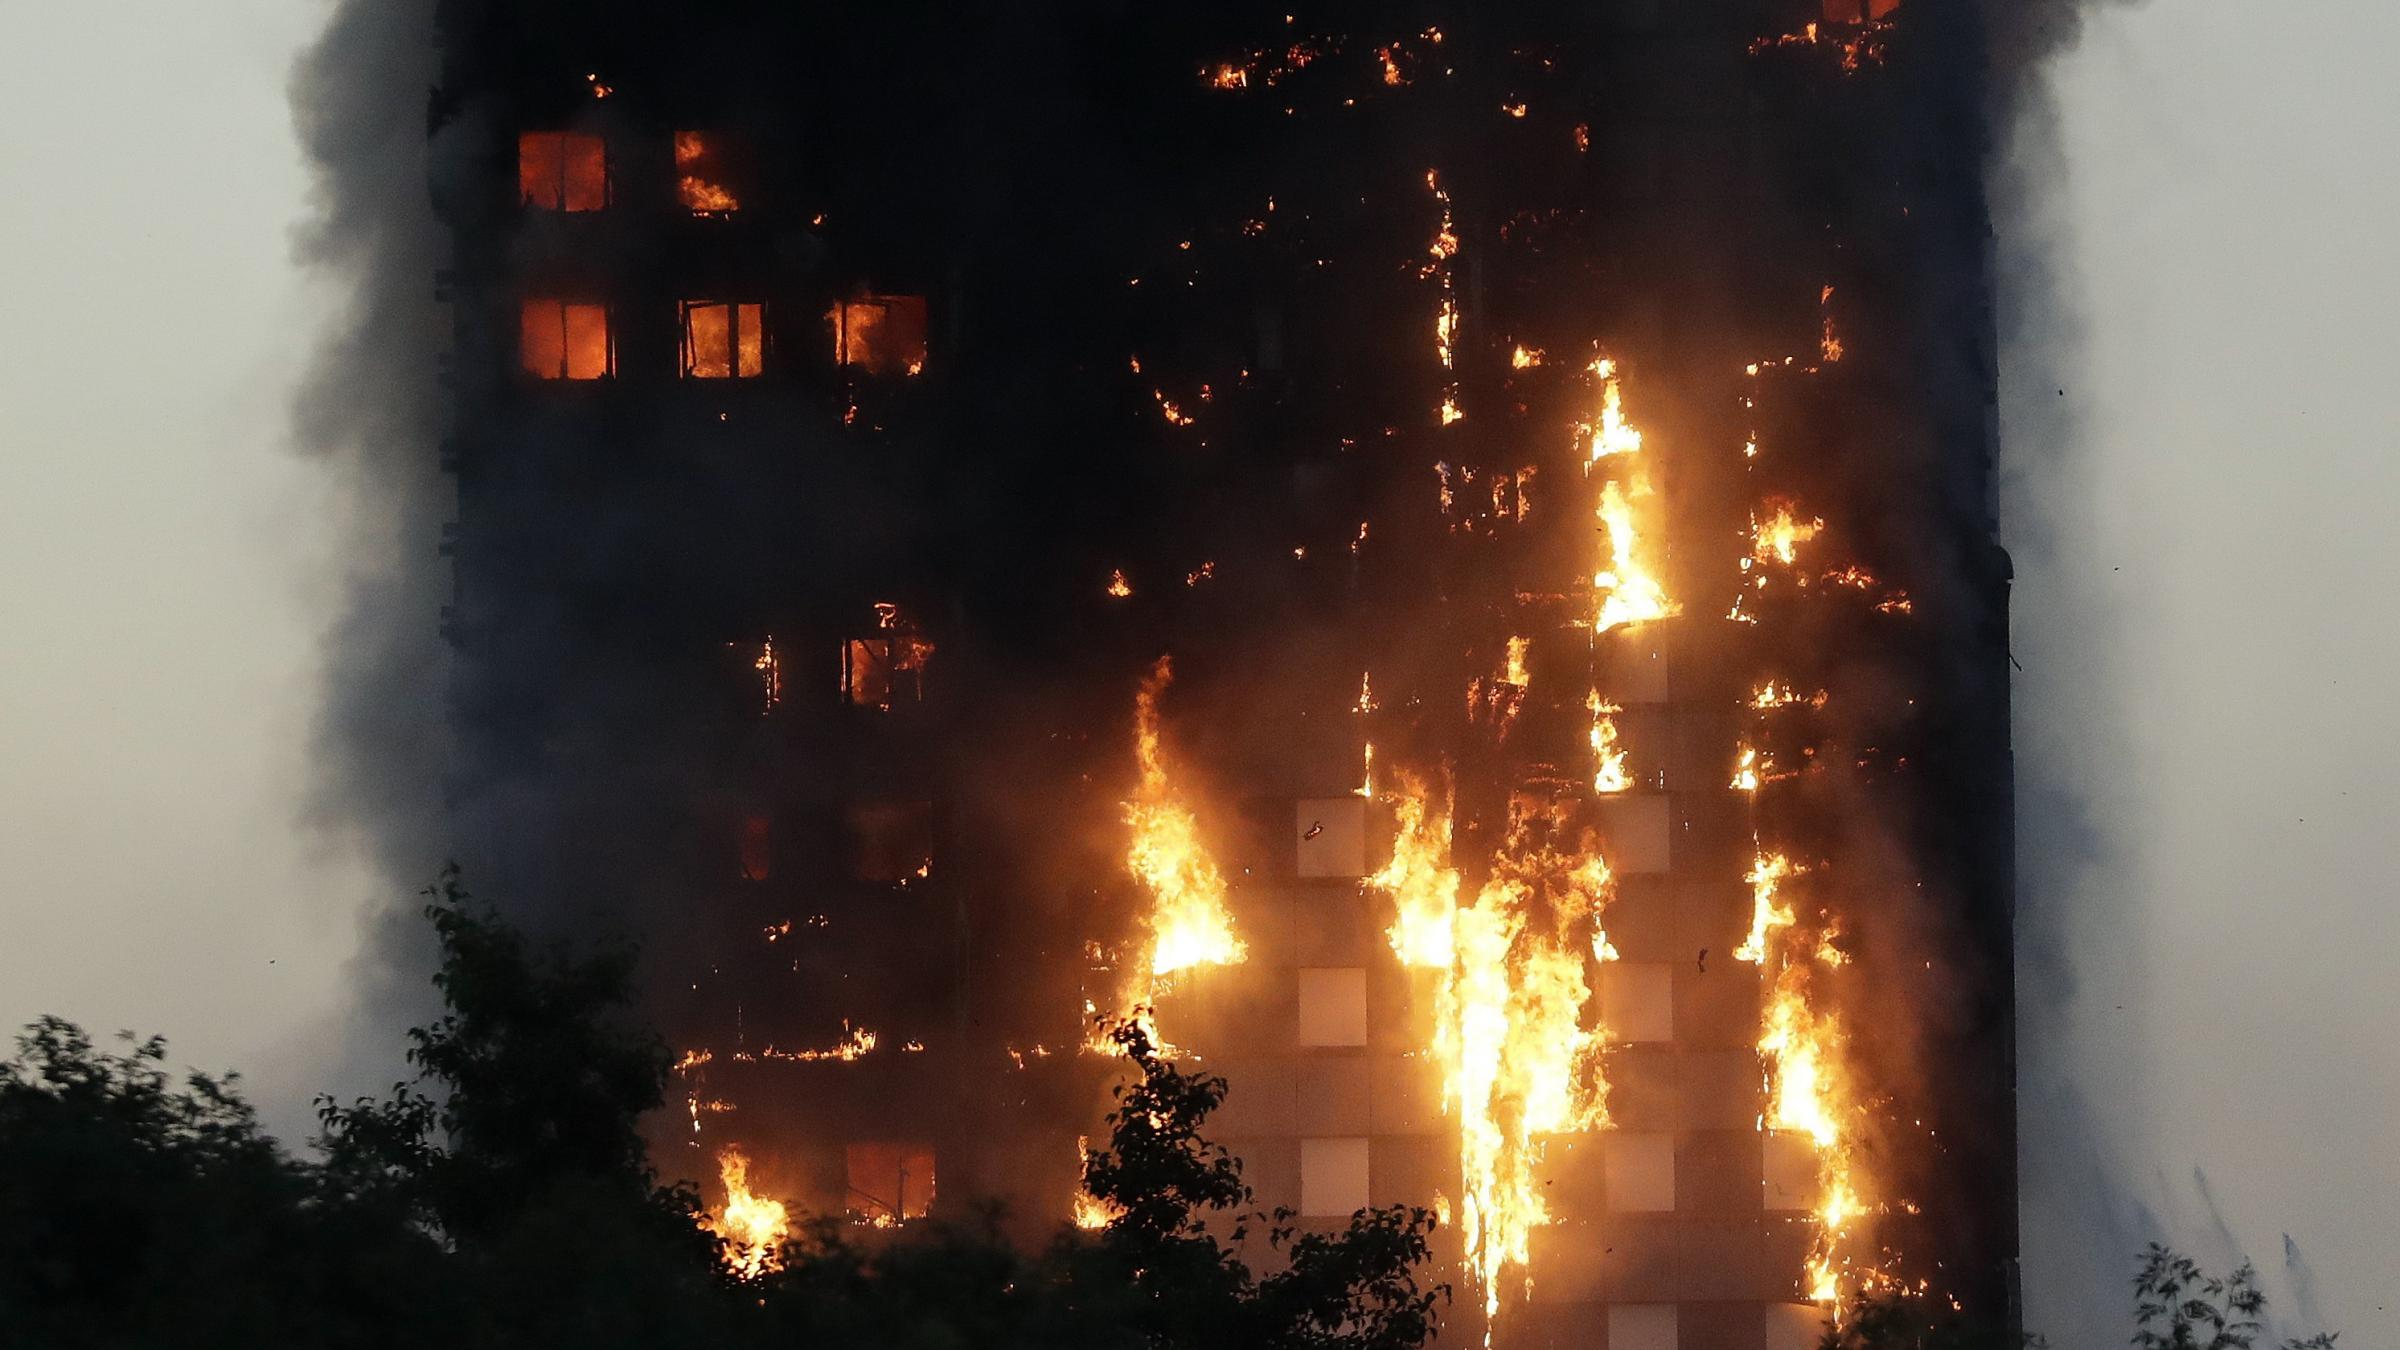 London fire: Six dead, dozens injured, building gutted in Grenfell Tower blaze